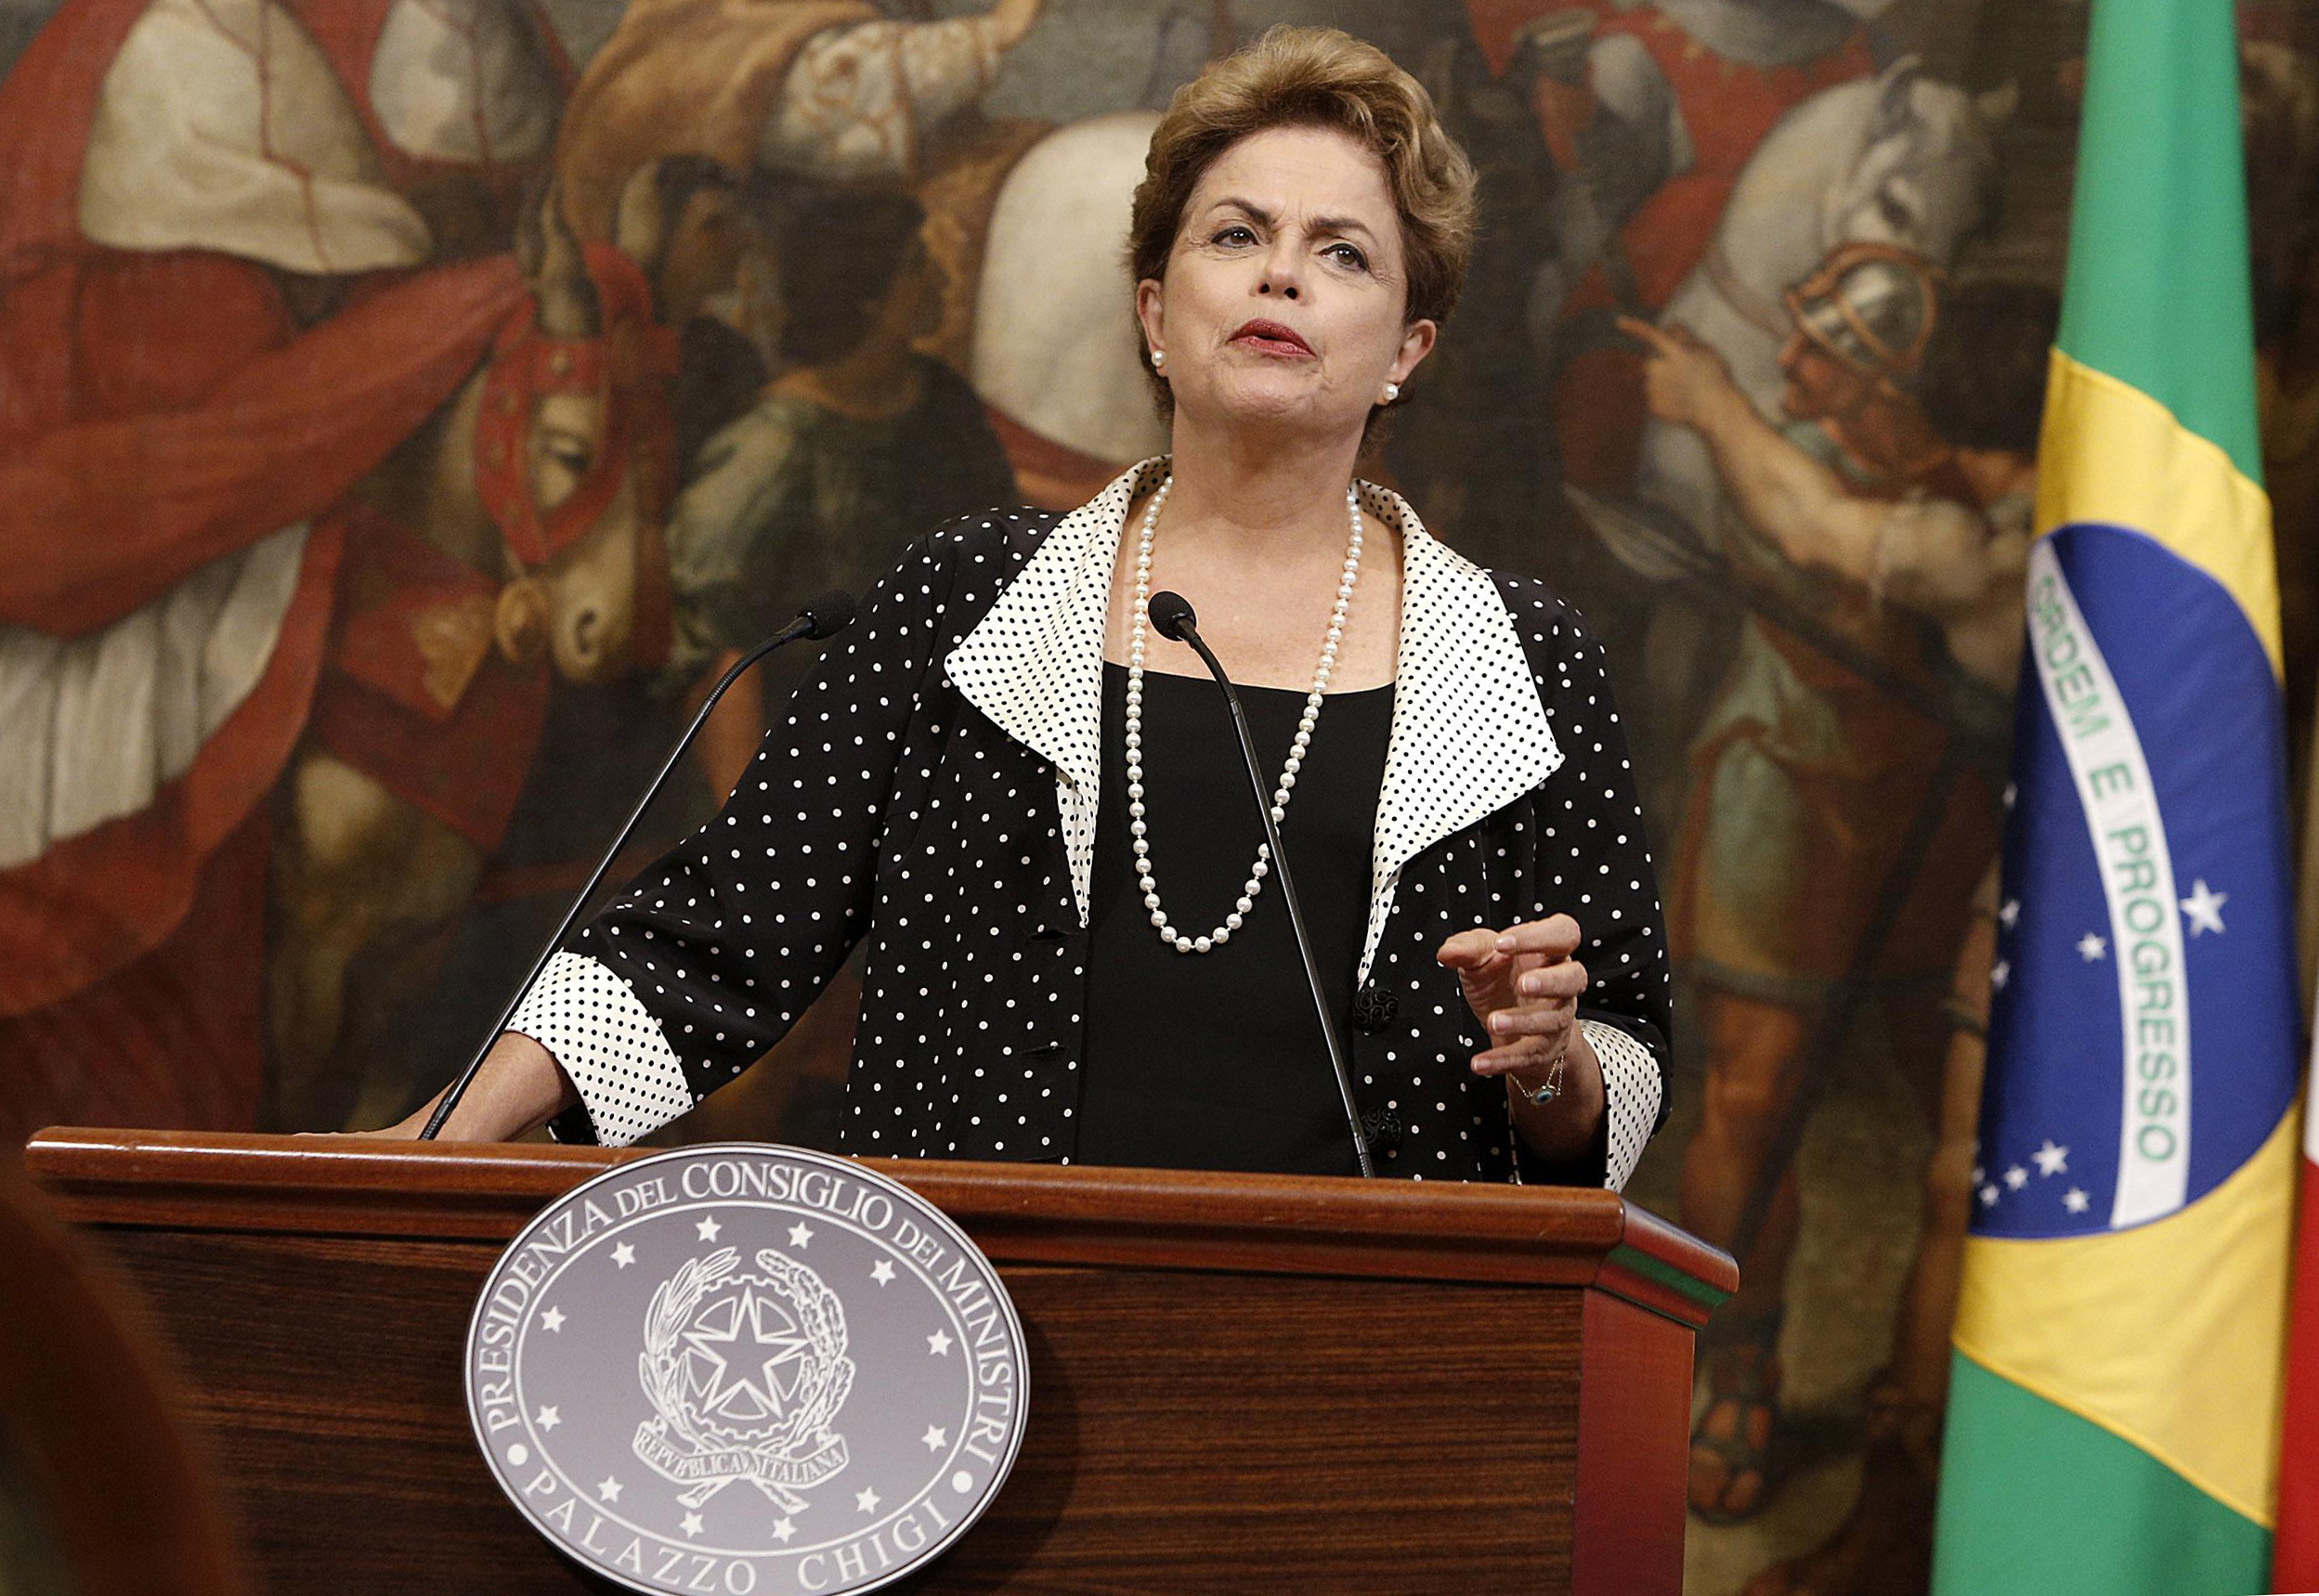 Brazilian President Dilma Rousseff speaks during a joint press conference with Italian Premier Matteo Renzi, at Chigi's Premier Palace in Rome on July 10, 2015.